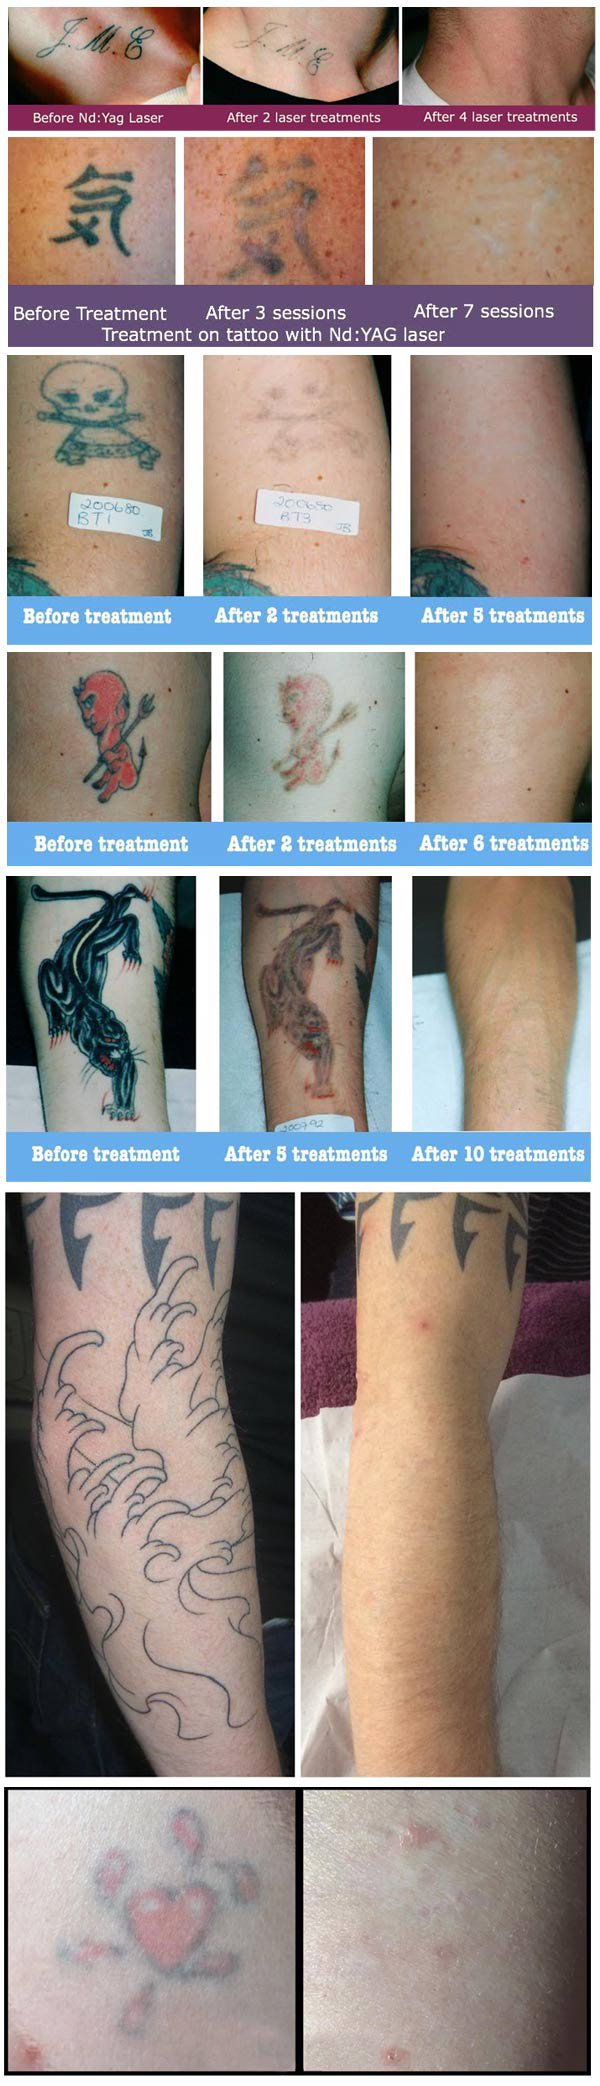 laser_tattoo_removal_before_after.jpg